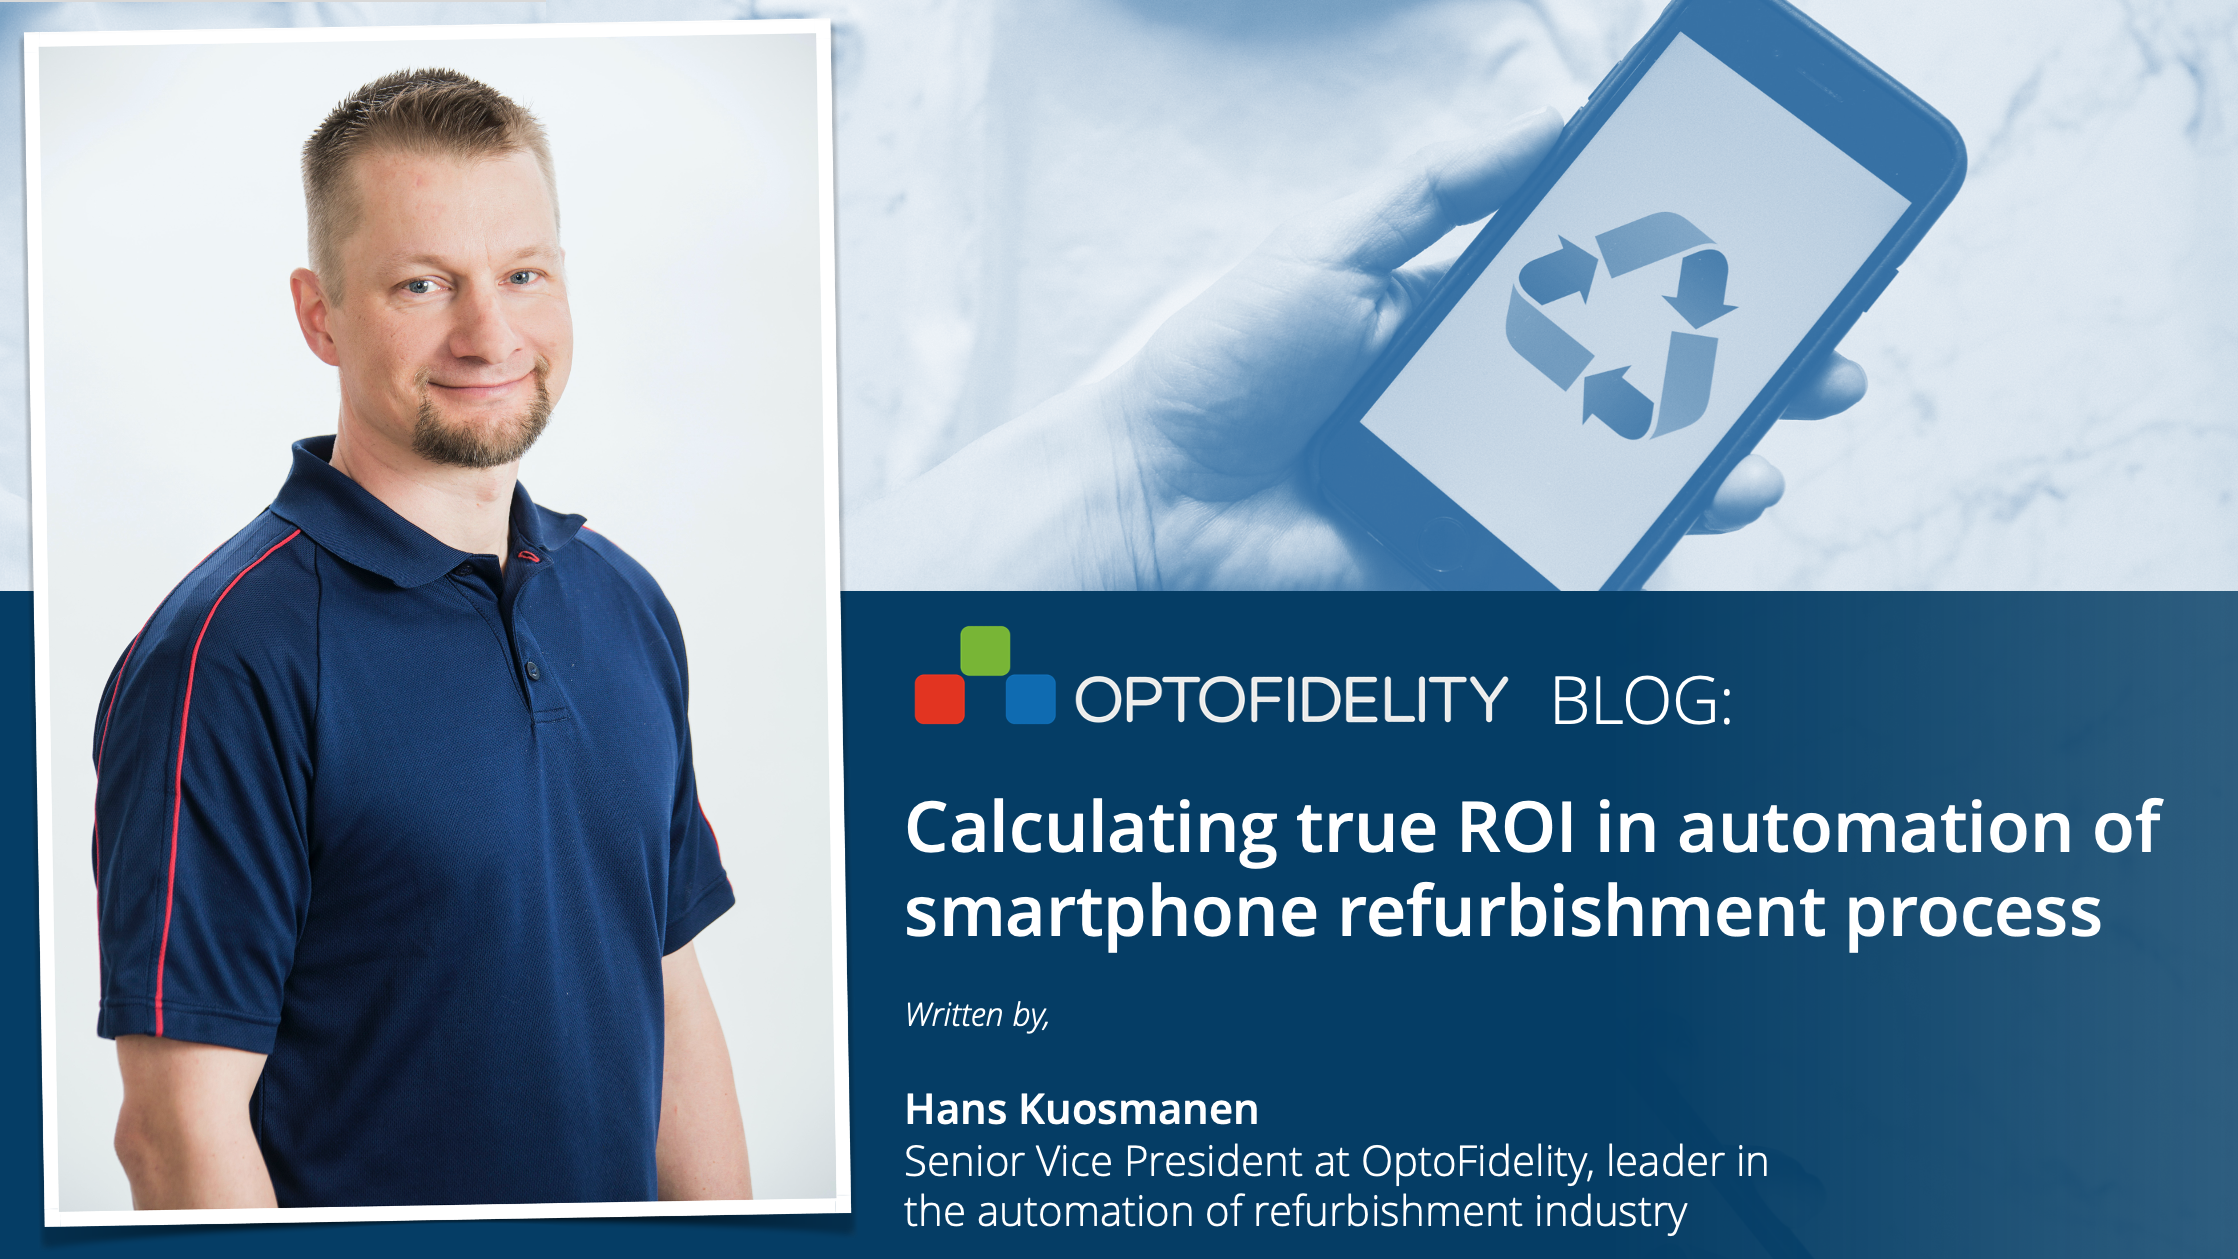 https://f.hubspotusercontent10.net/hubfs/6347010/OptoFidelity_blog_by_Hans_Kuosmanen_Calculating_true_ROI_in_automation_of_smartphone_refurbishment_process_2021_04_rectangle.png